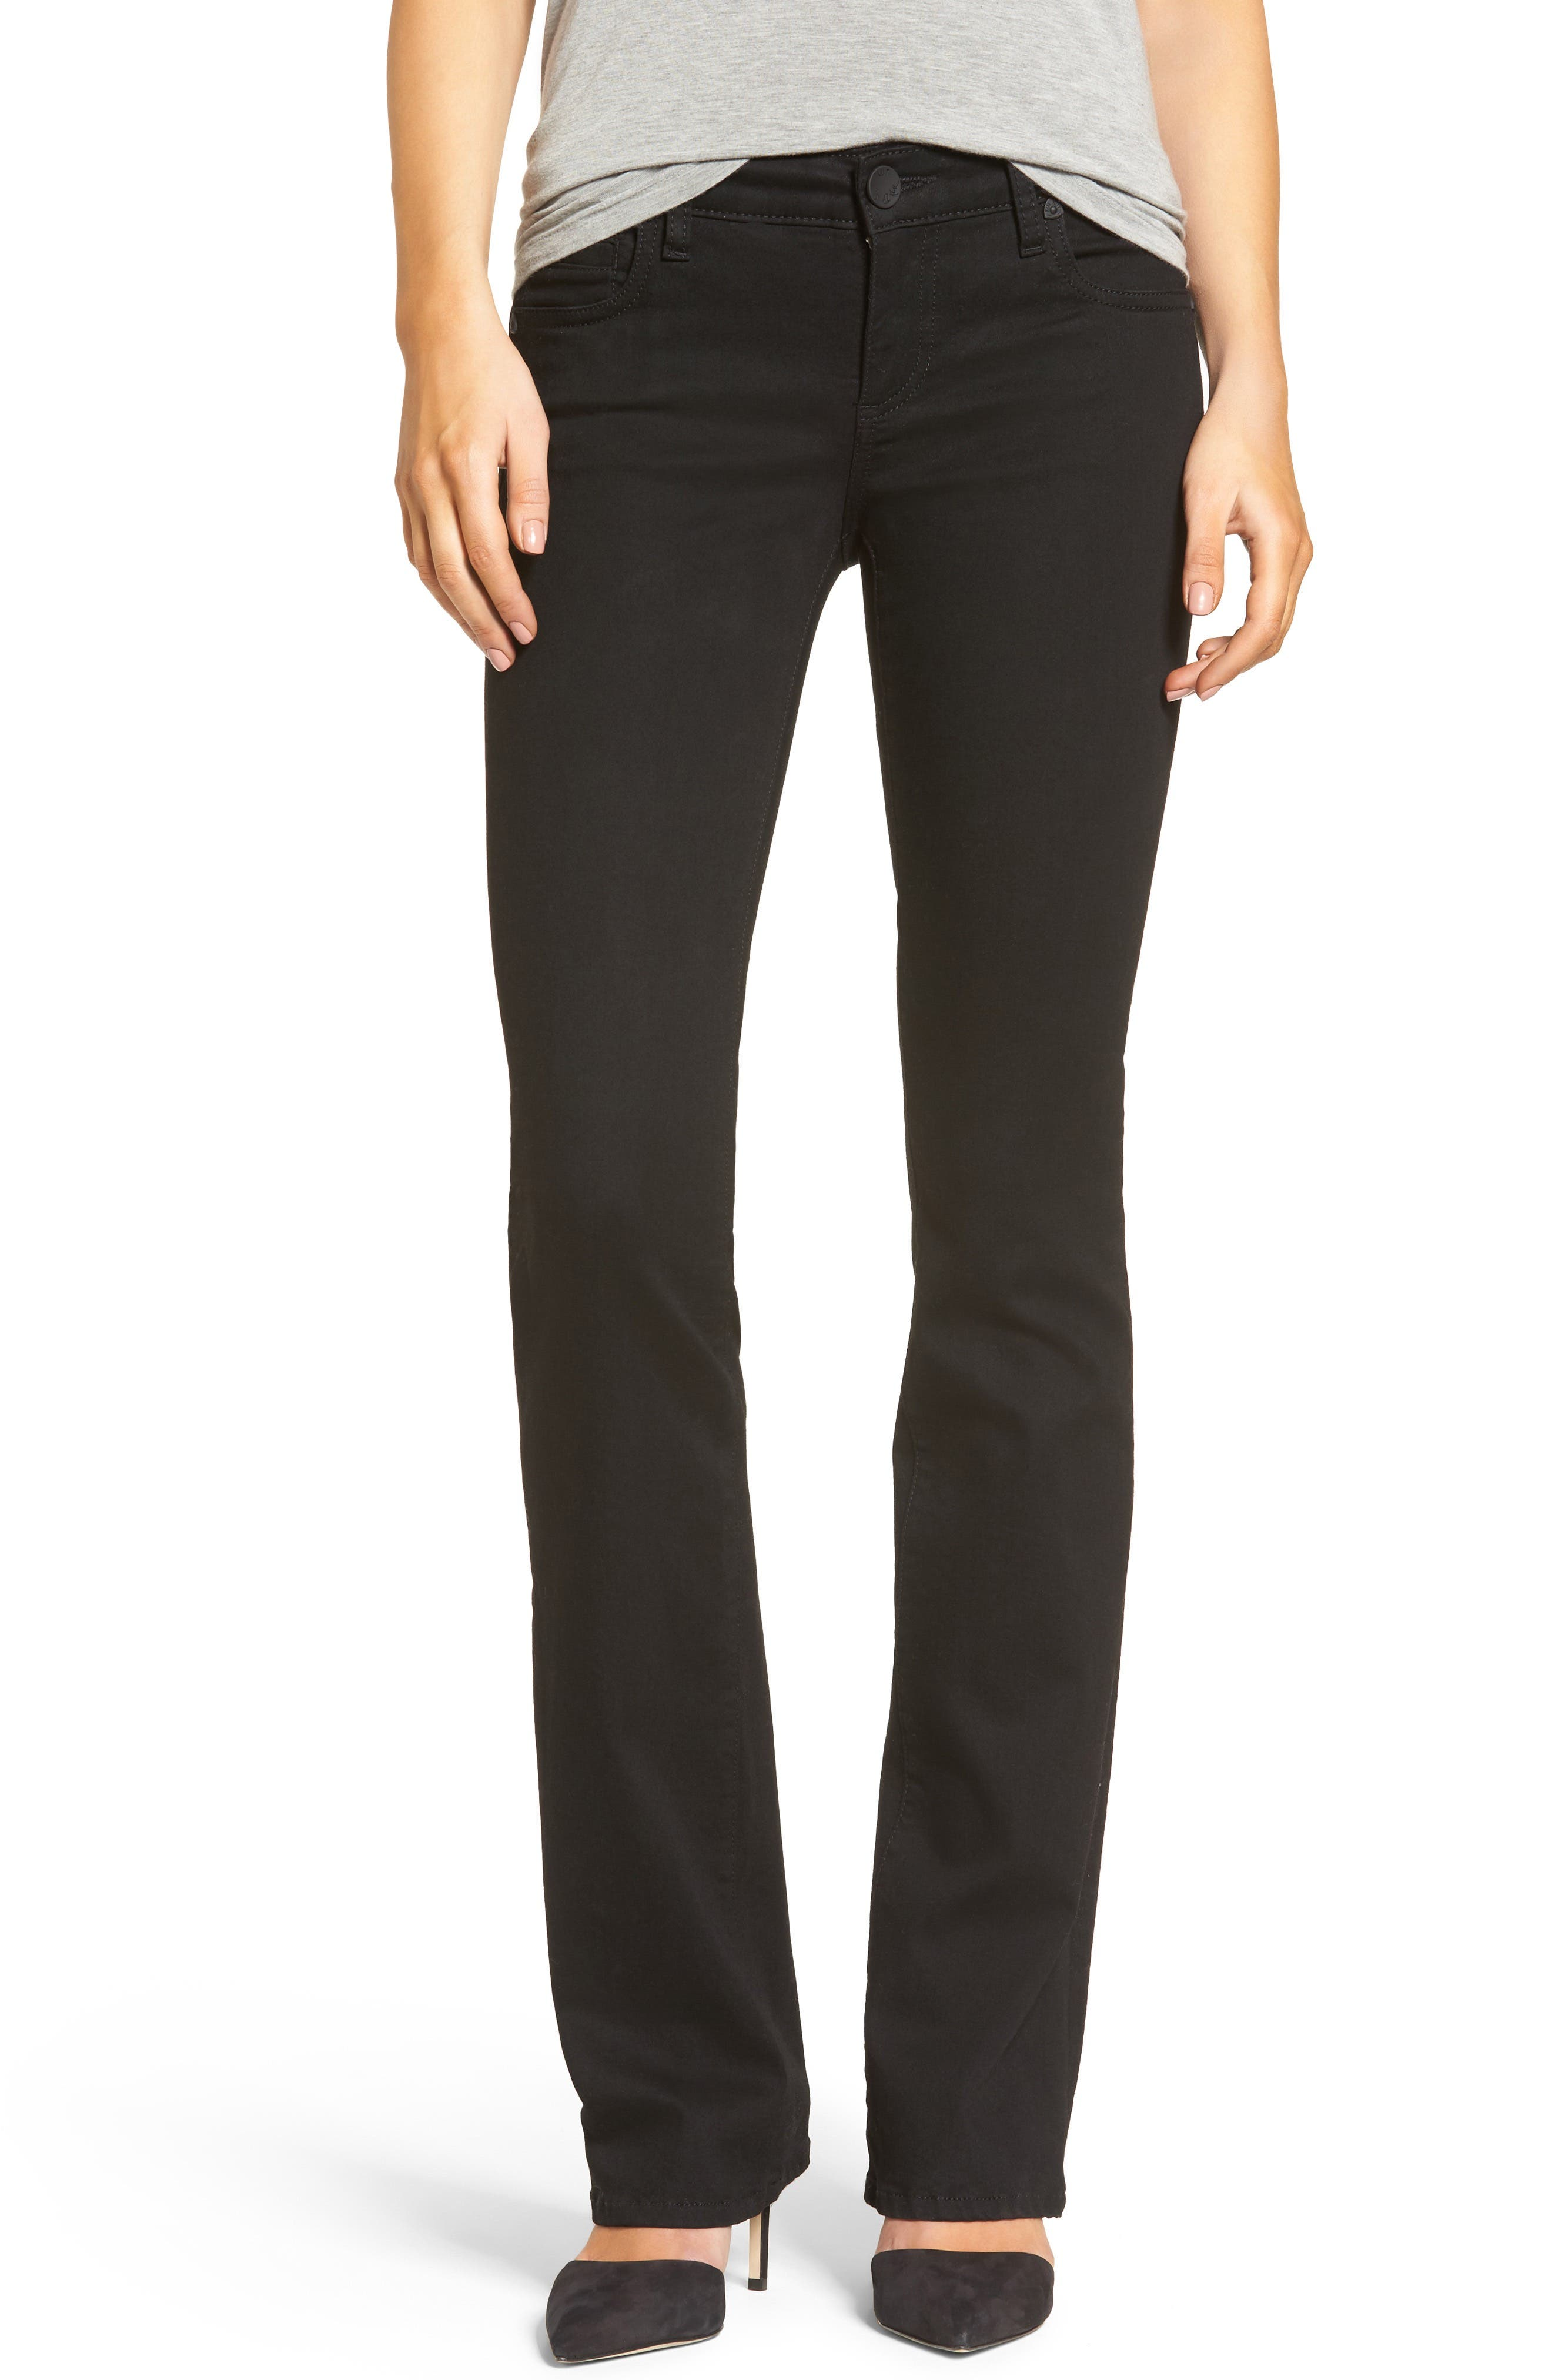 KUT from the Kloth Natalie Stretch Bootleg Jeans (Regular & Petite)